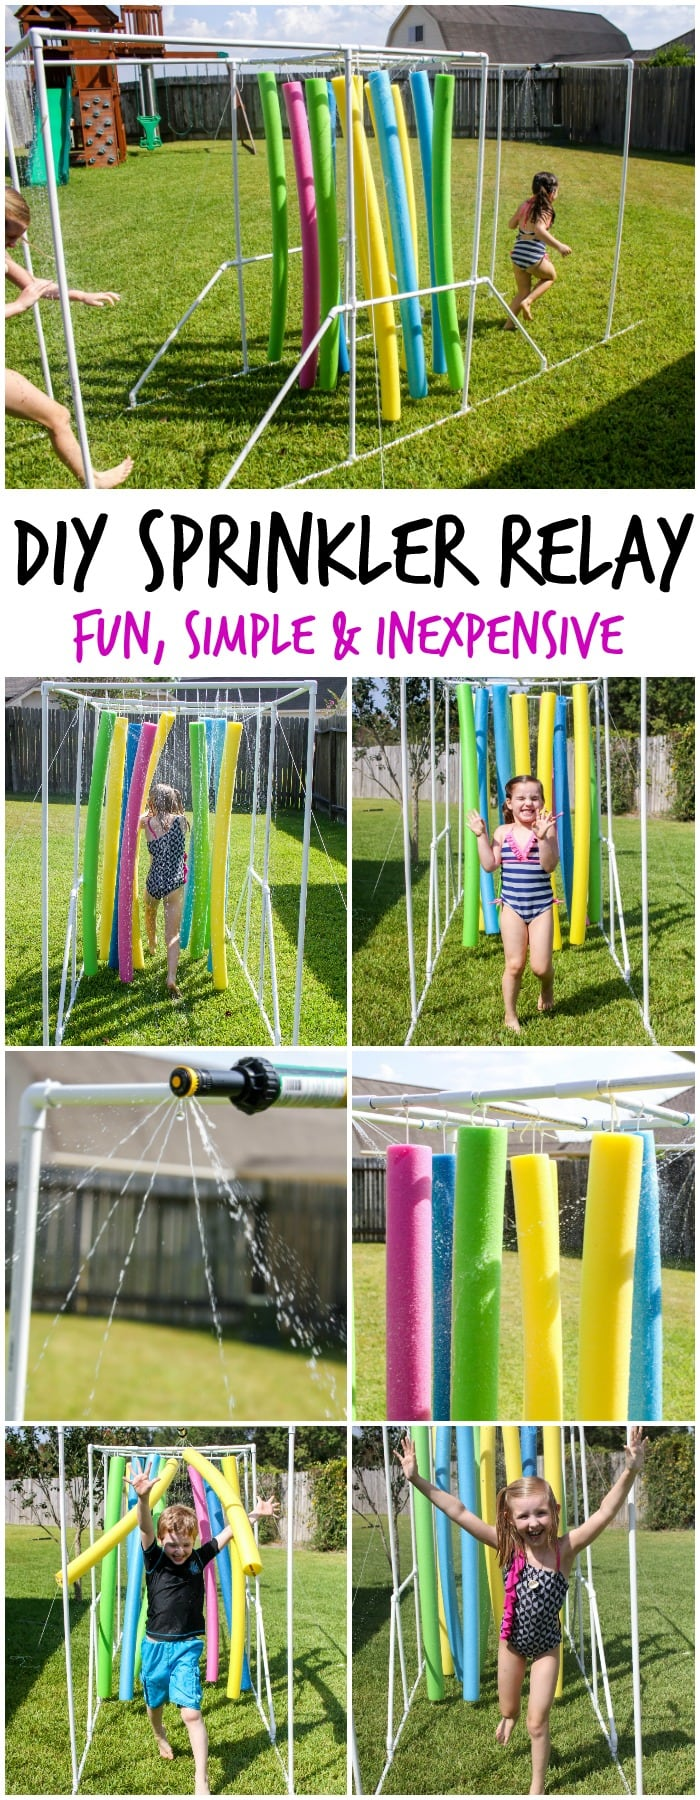 DIY Sprinkler Relay - a fun summer activity for kids that is inexpensive and provides hours of entertainment!